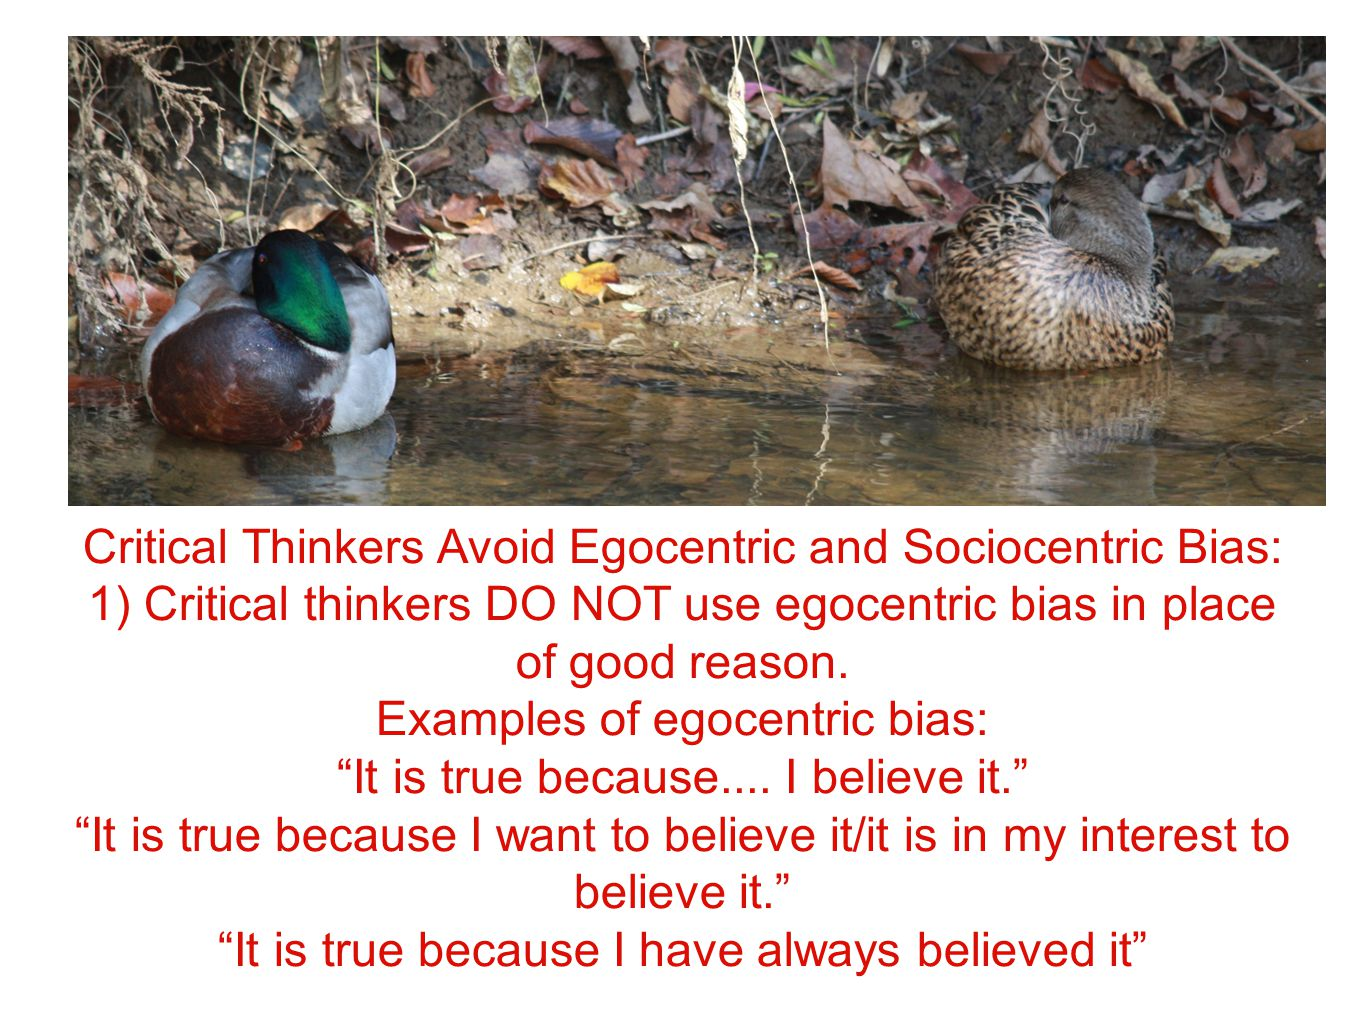 Critical Thinkers Avoid Egocentric and Sociocentric Bias: 1) Critical thinkers DO NOT use egocentric bias in place of good reason.